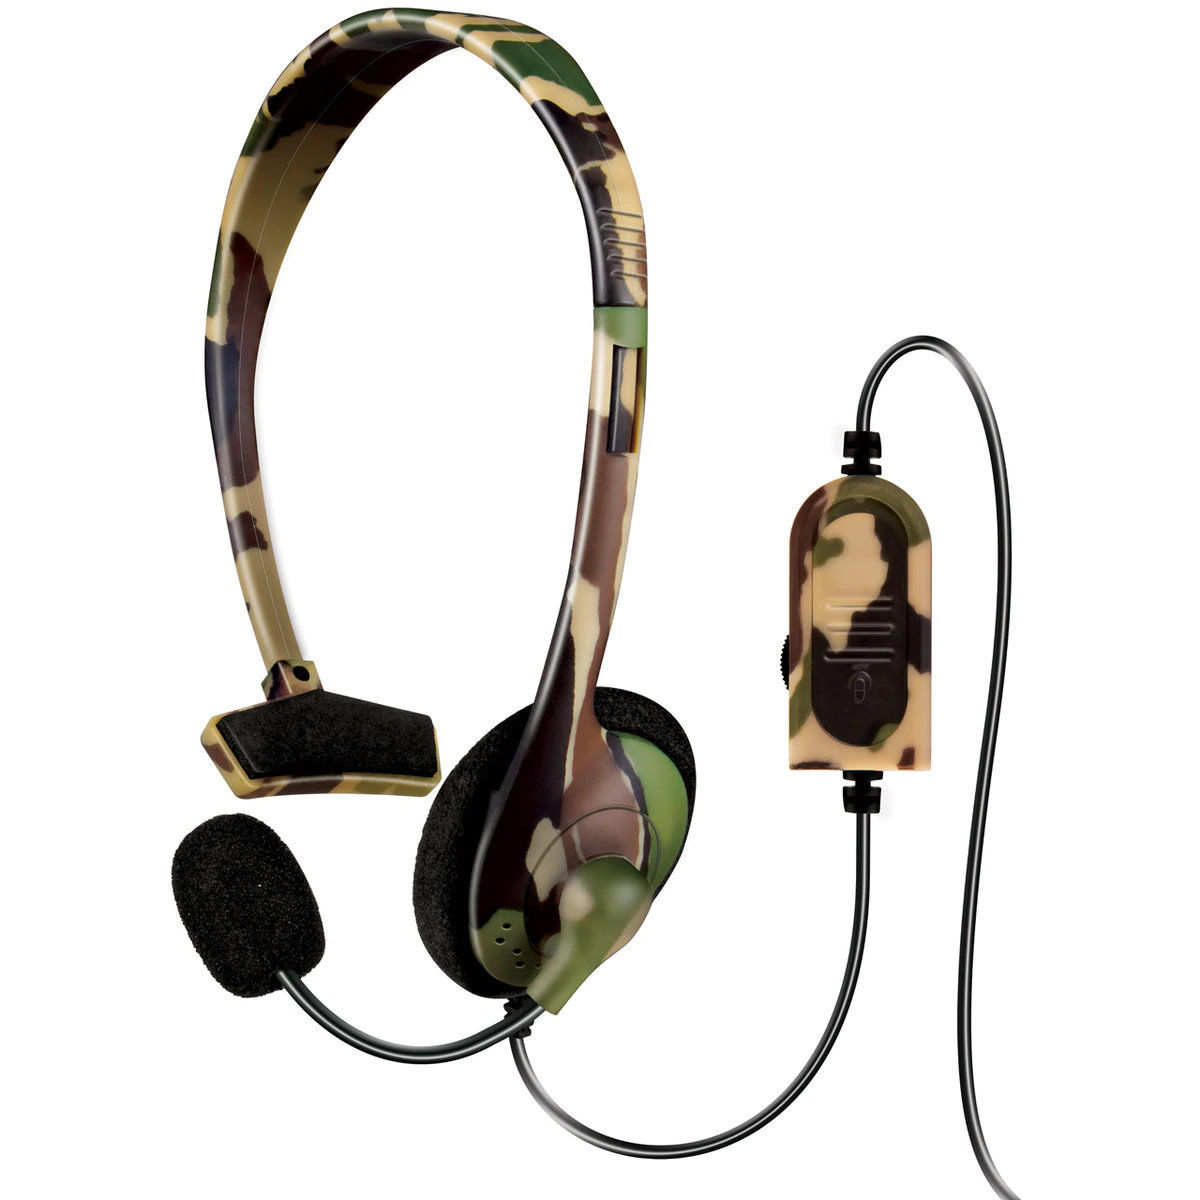 Picture of dreamGEAR Broadcaster Headset for PS4 - Jungle Camo